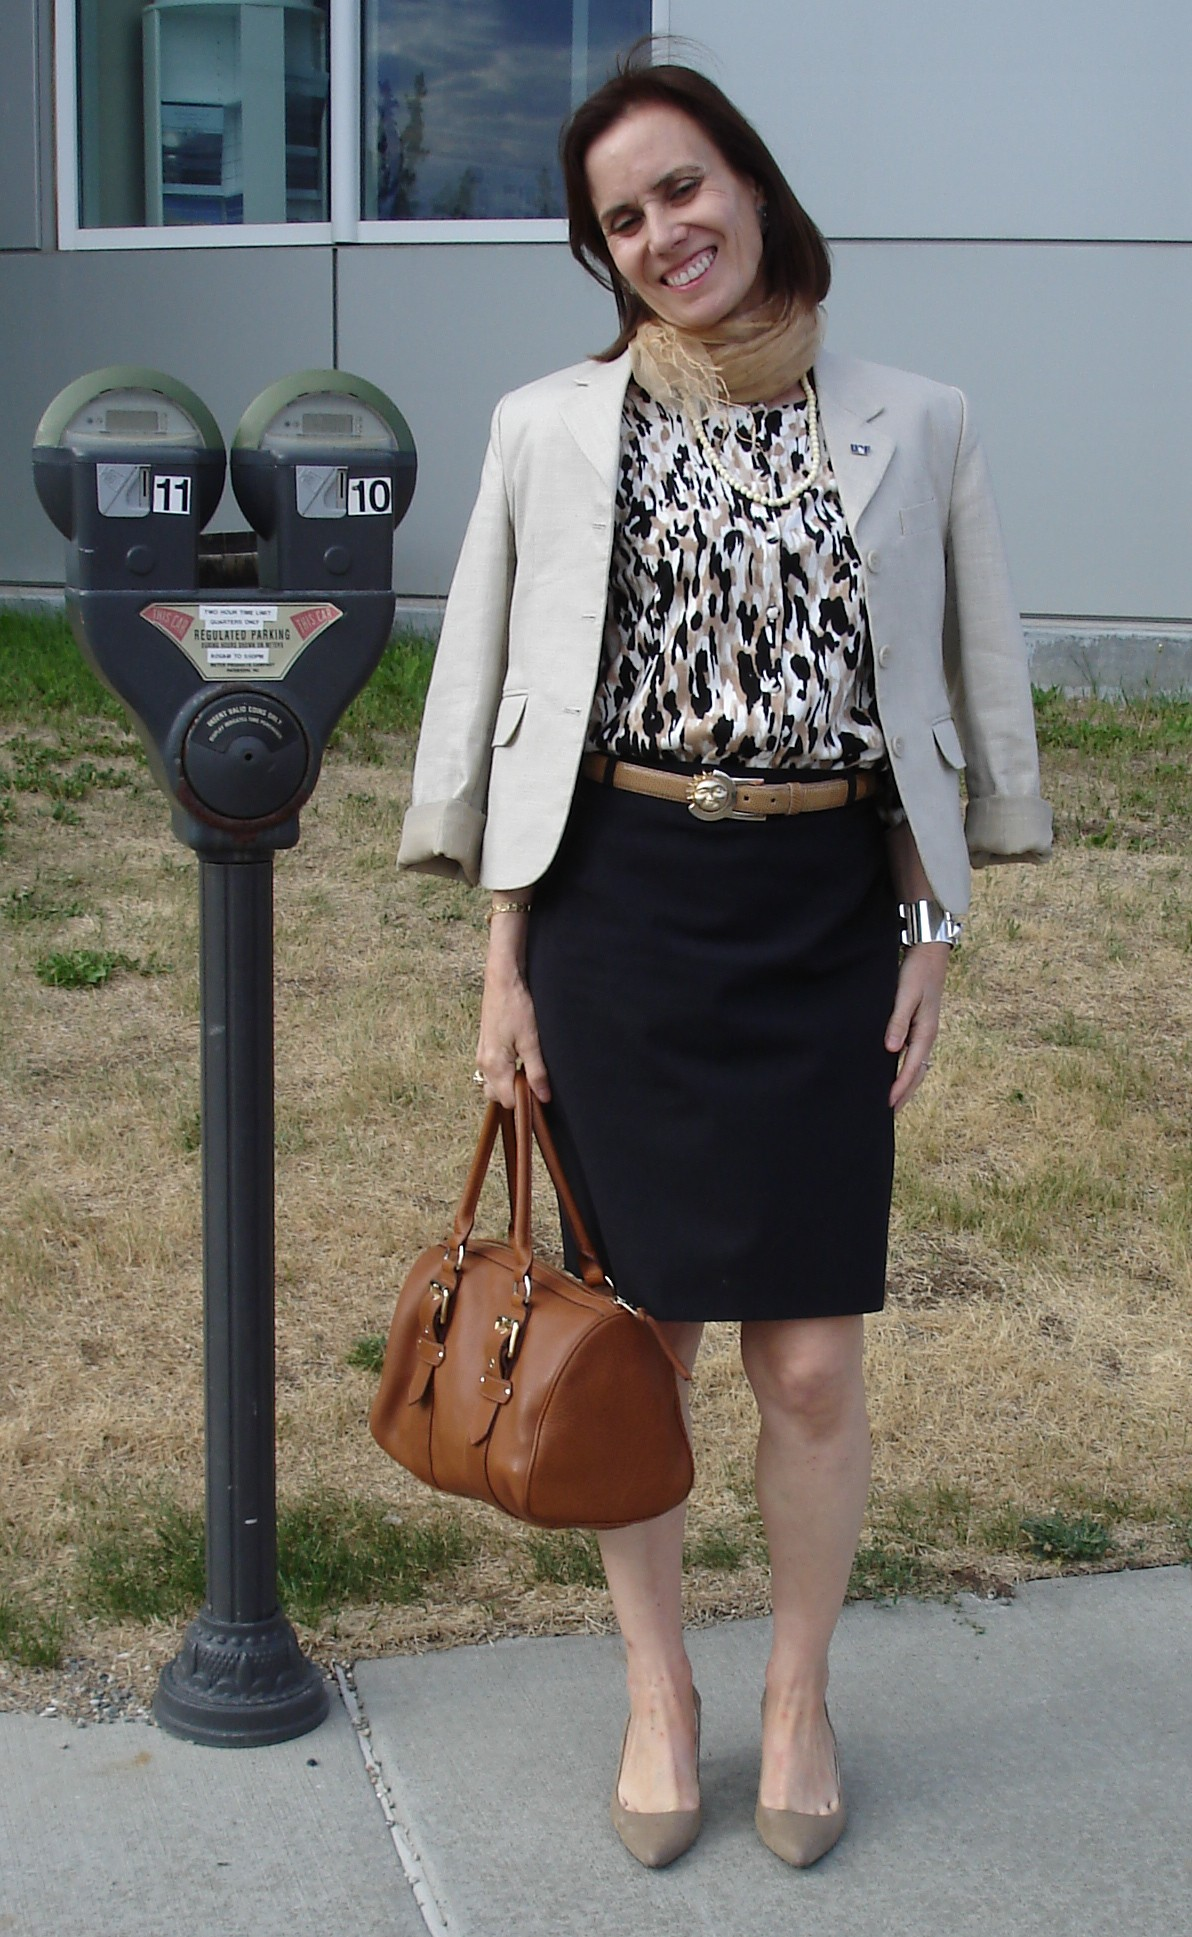 mature woman wearing a skirt and top in job interview style